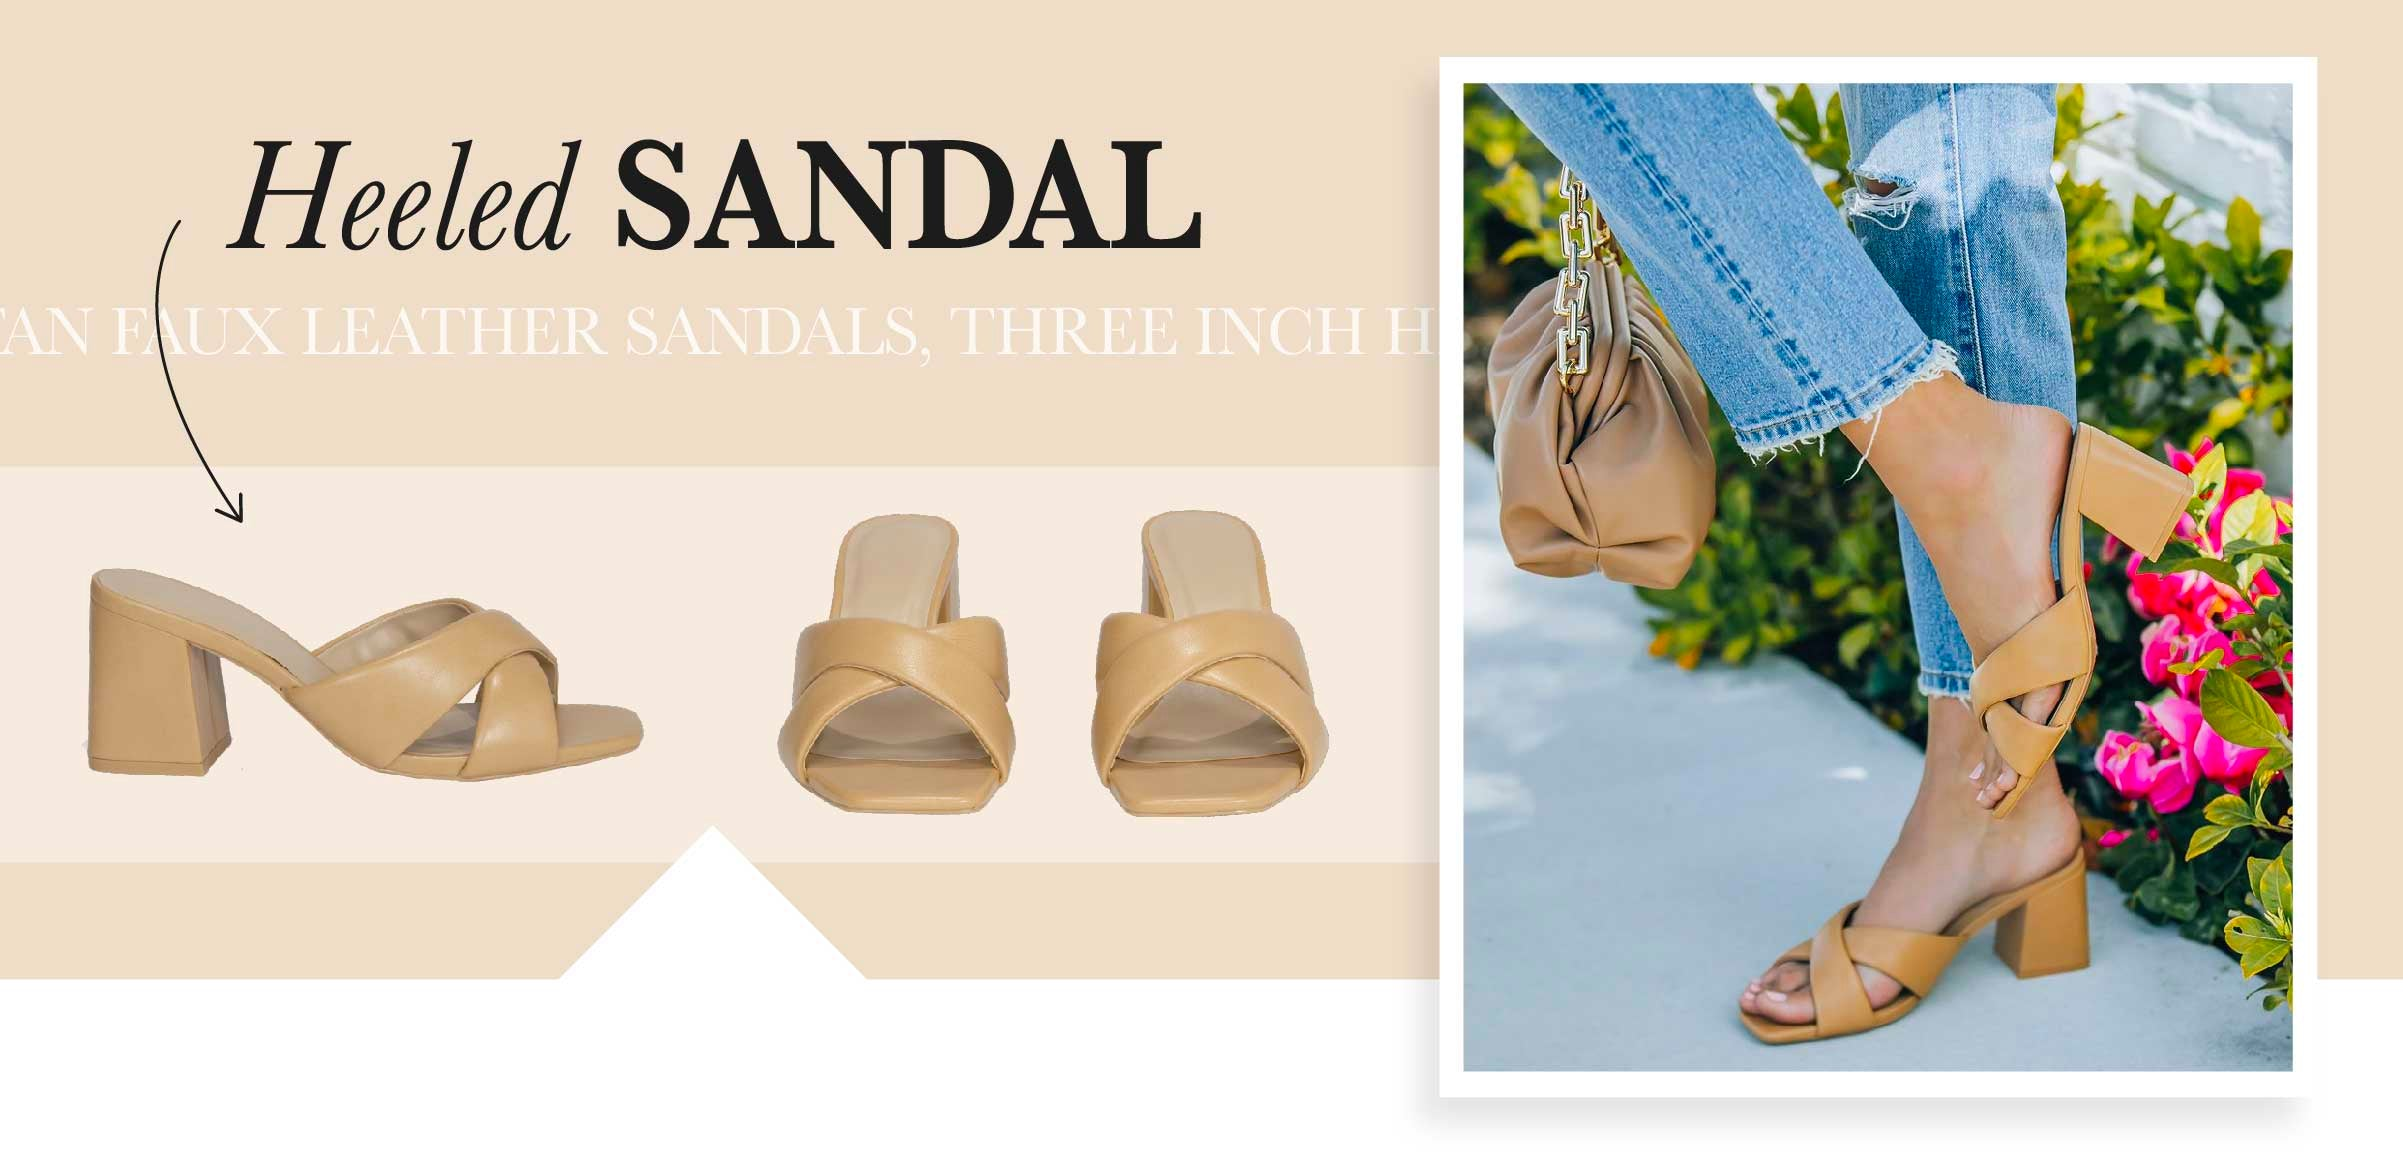 Done are the days of sacrificing comfort for cuteness, that's why the heeled sandal is the shoe of the summer! These true champions will allow you to stand for hours at work, or dance your heart out all night at a Lana Del Rey concert.